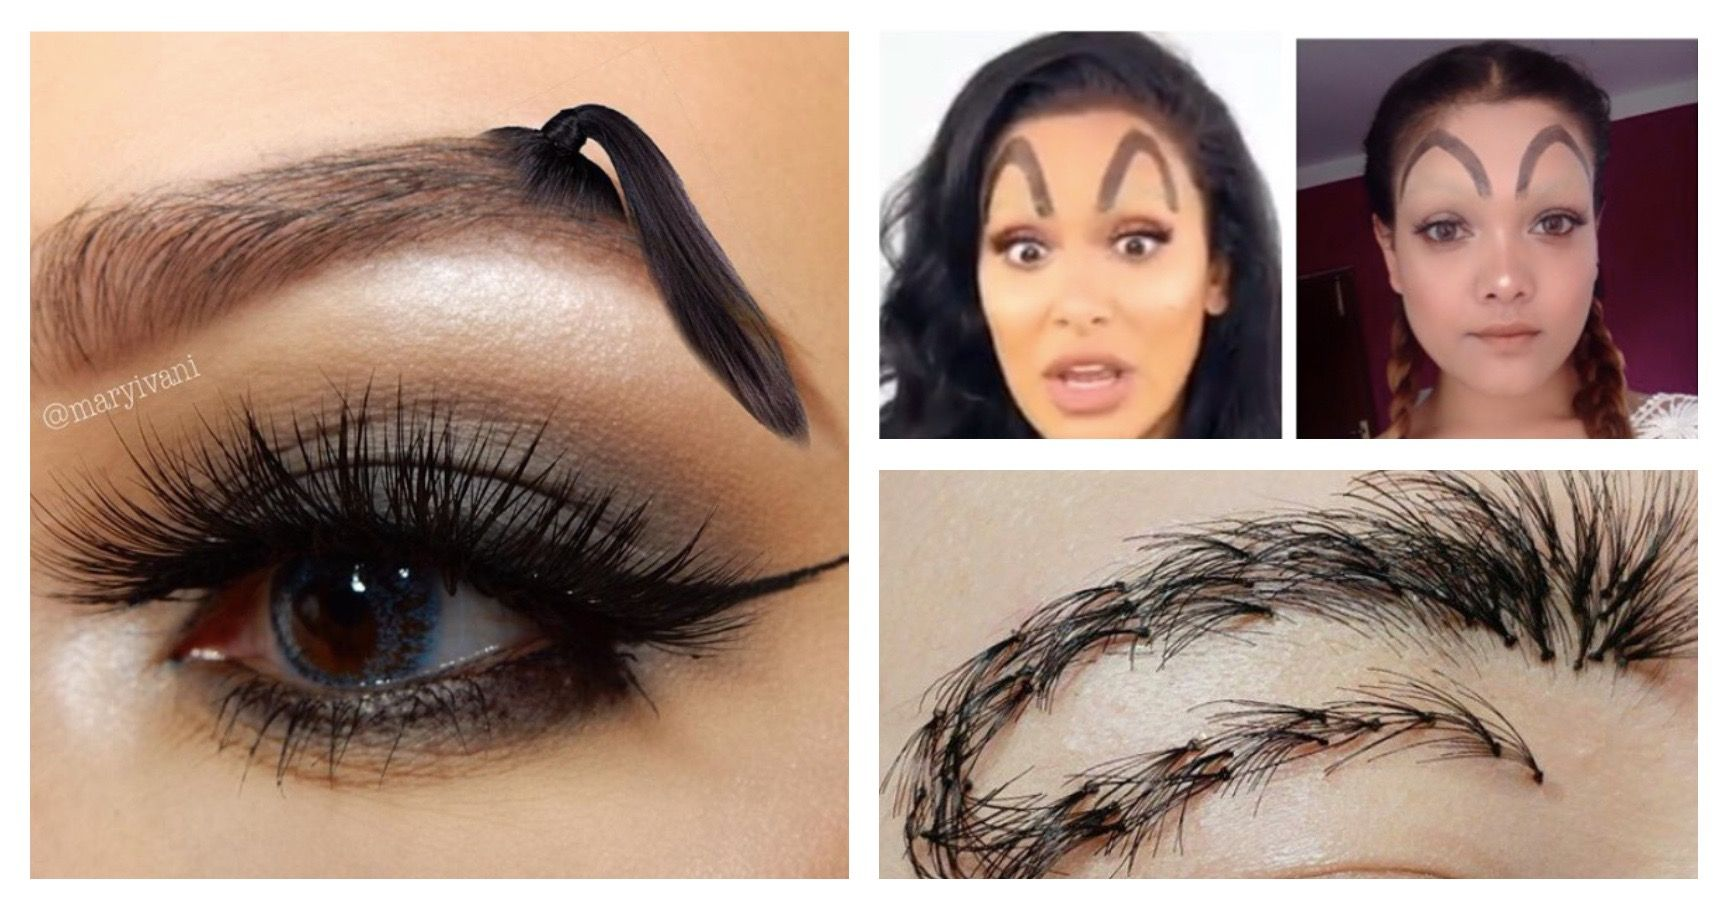 15 Eyebrow Trends That Shouldn't Exist